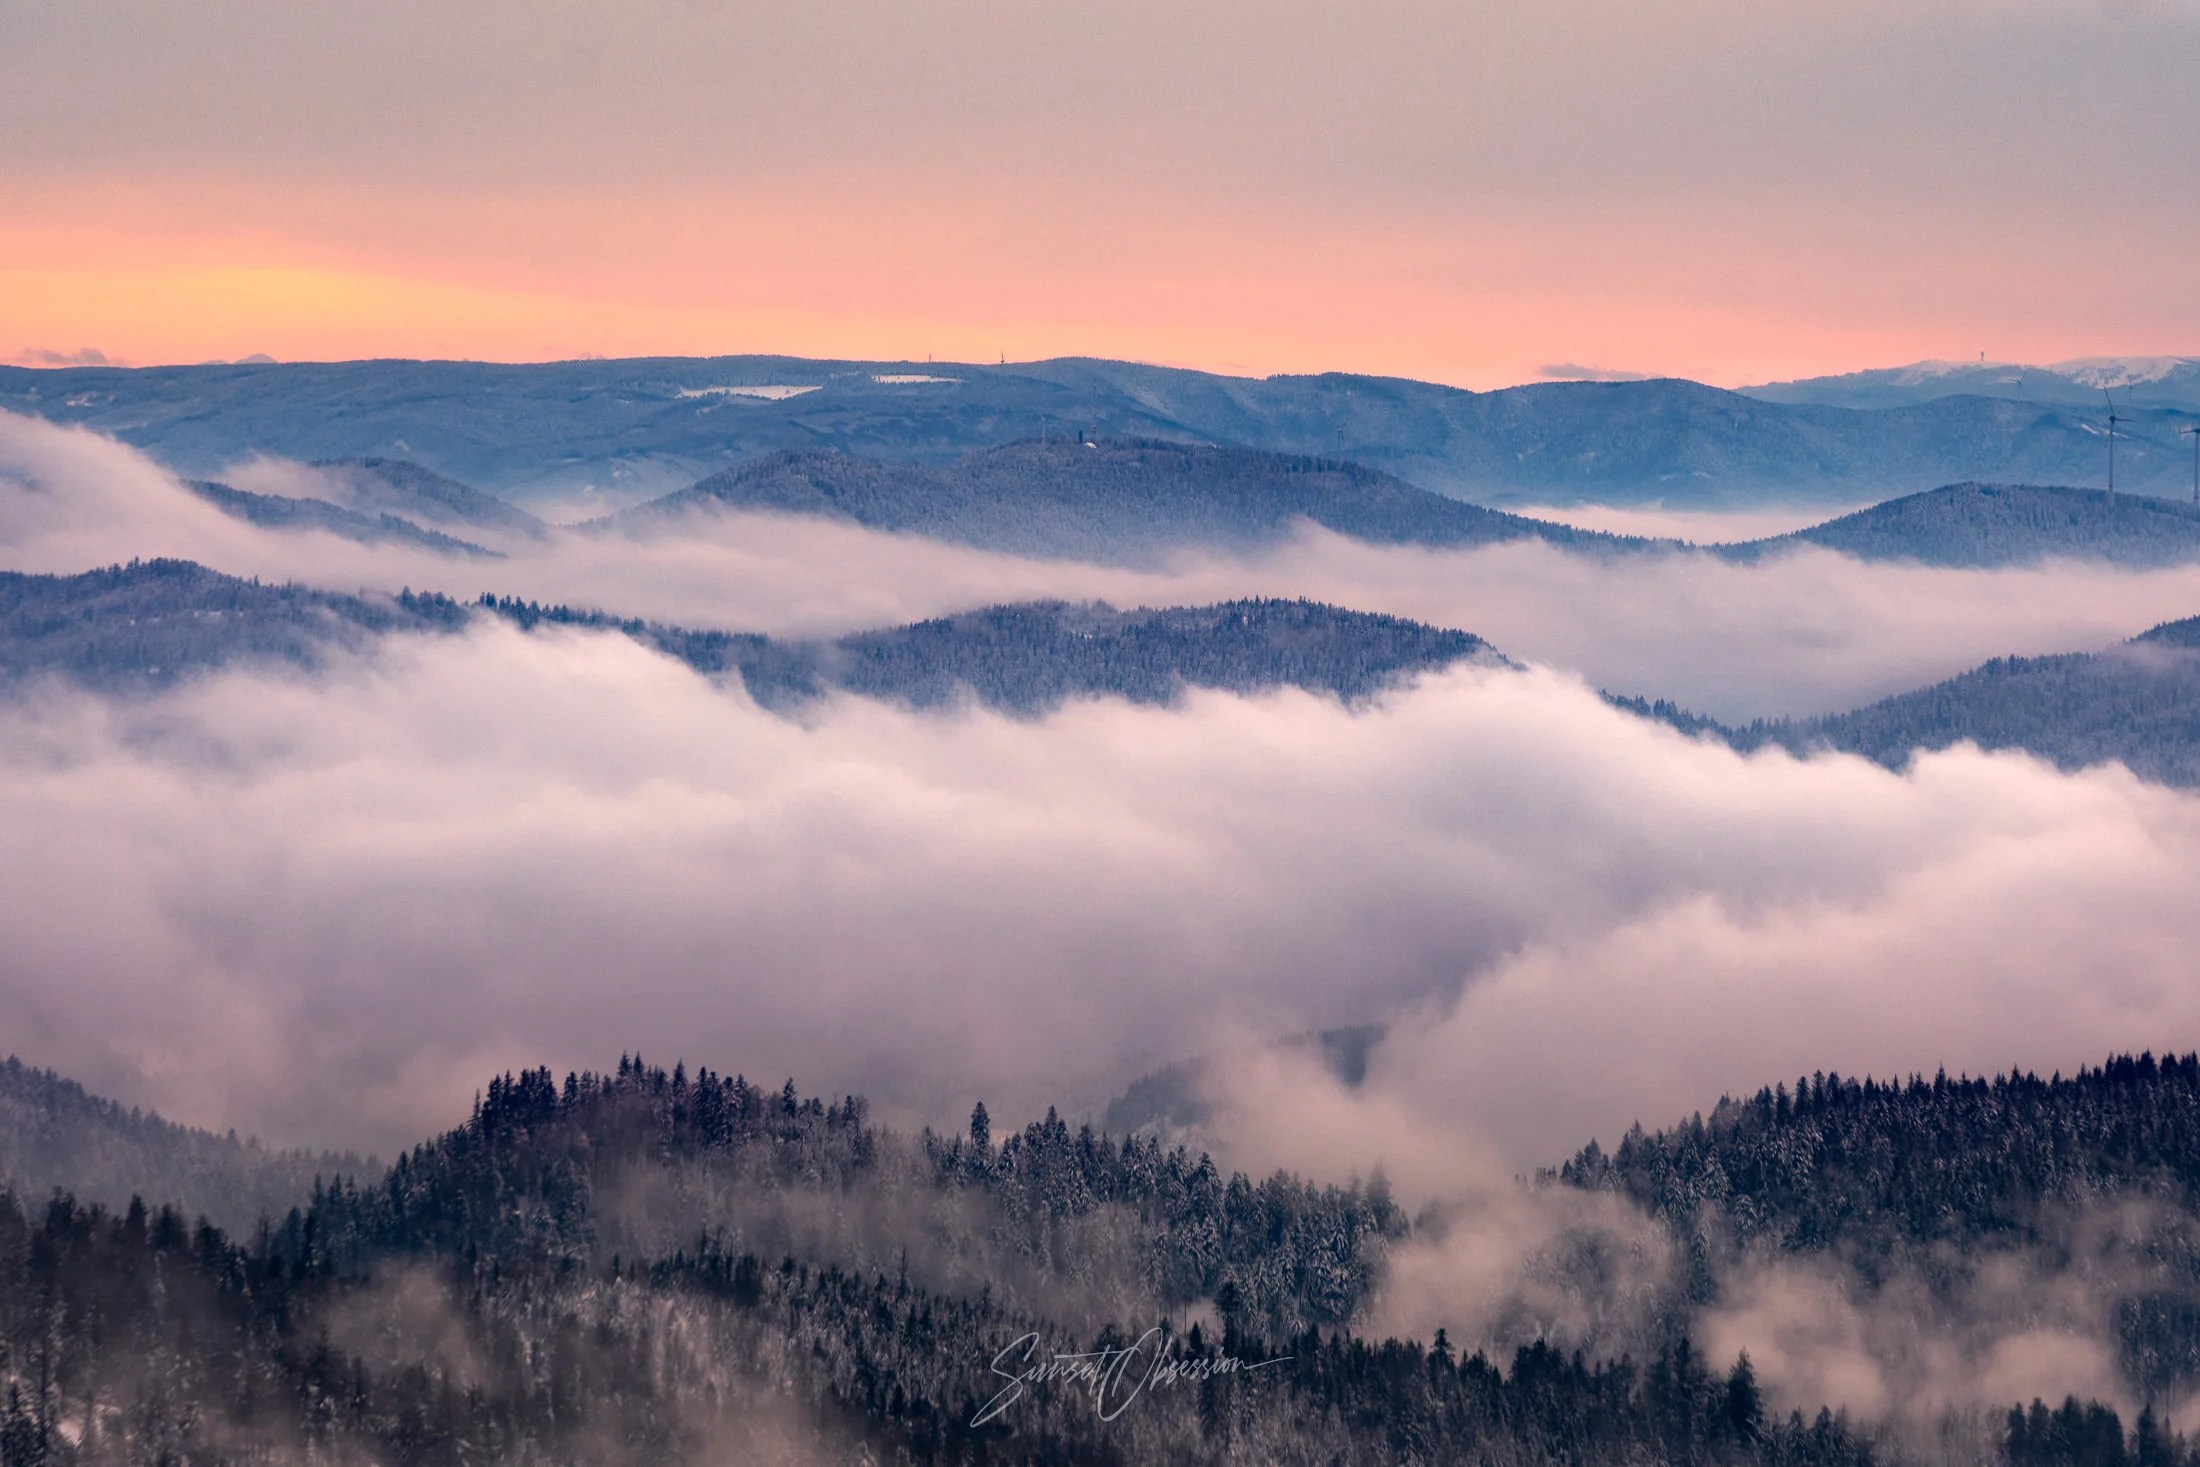 Cloud Inversion over Black Forest, Germany